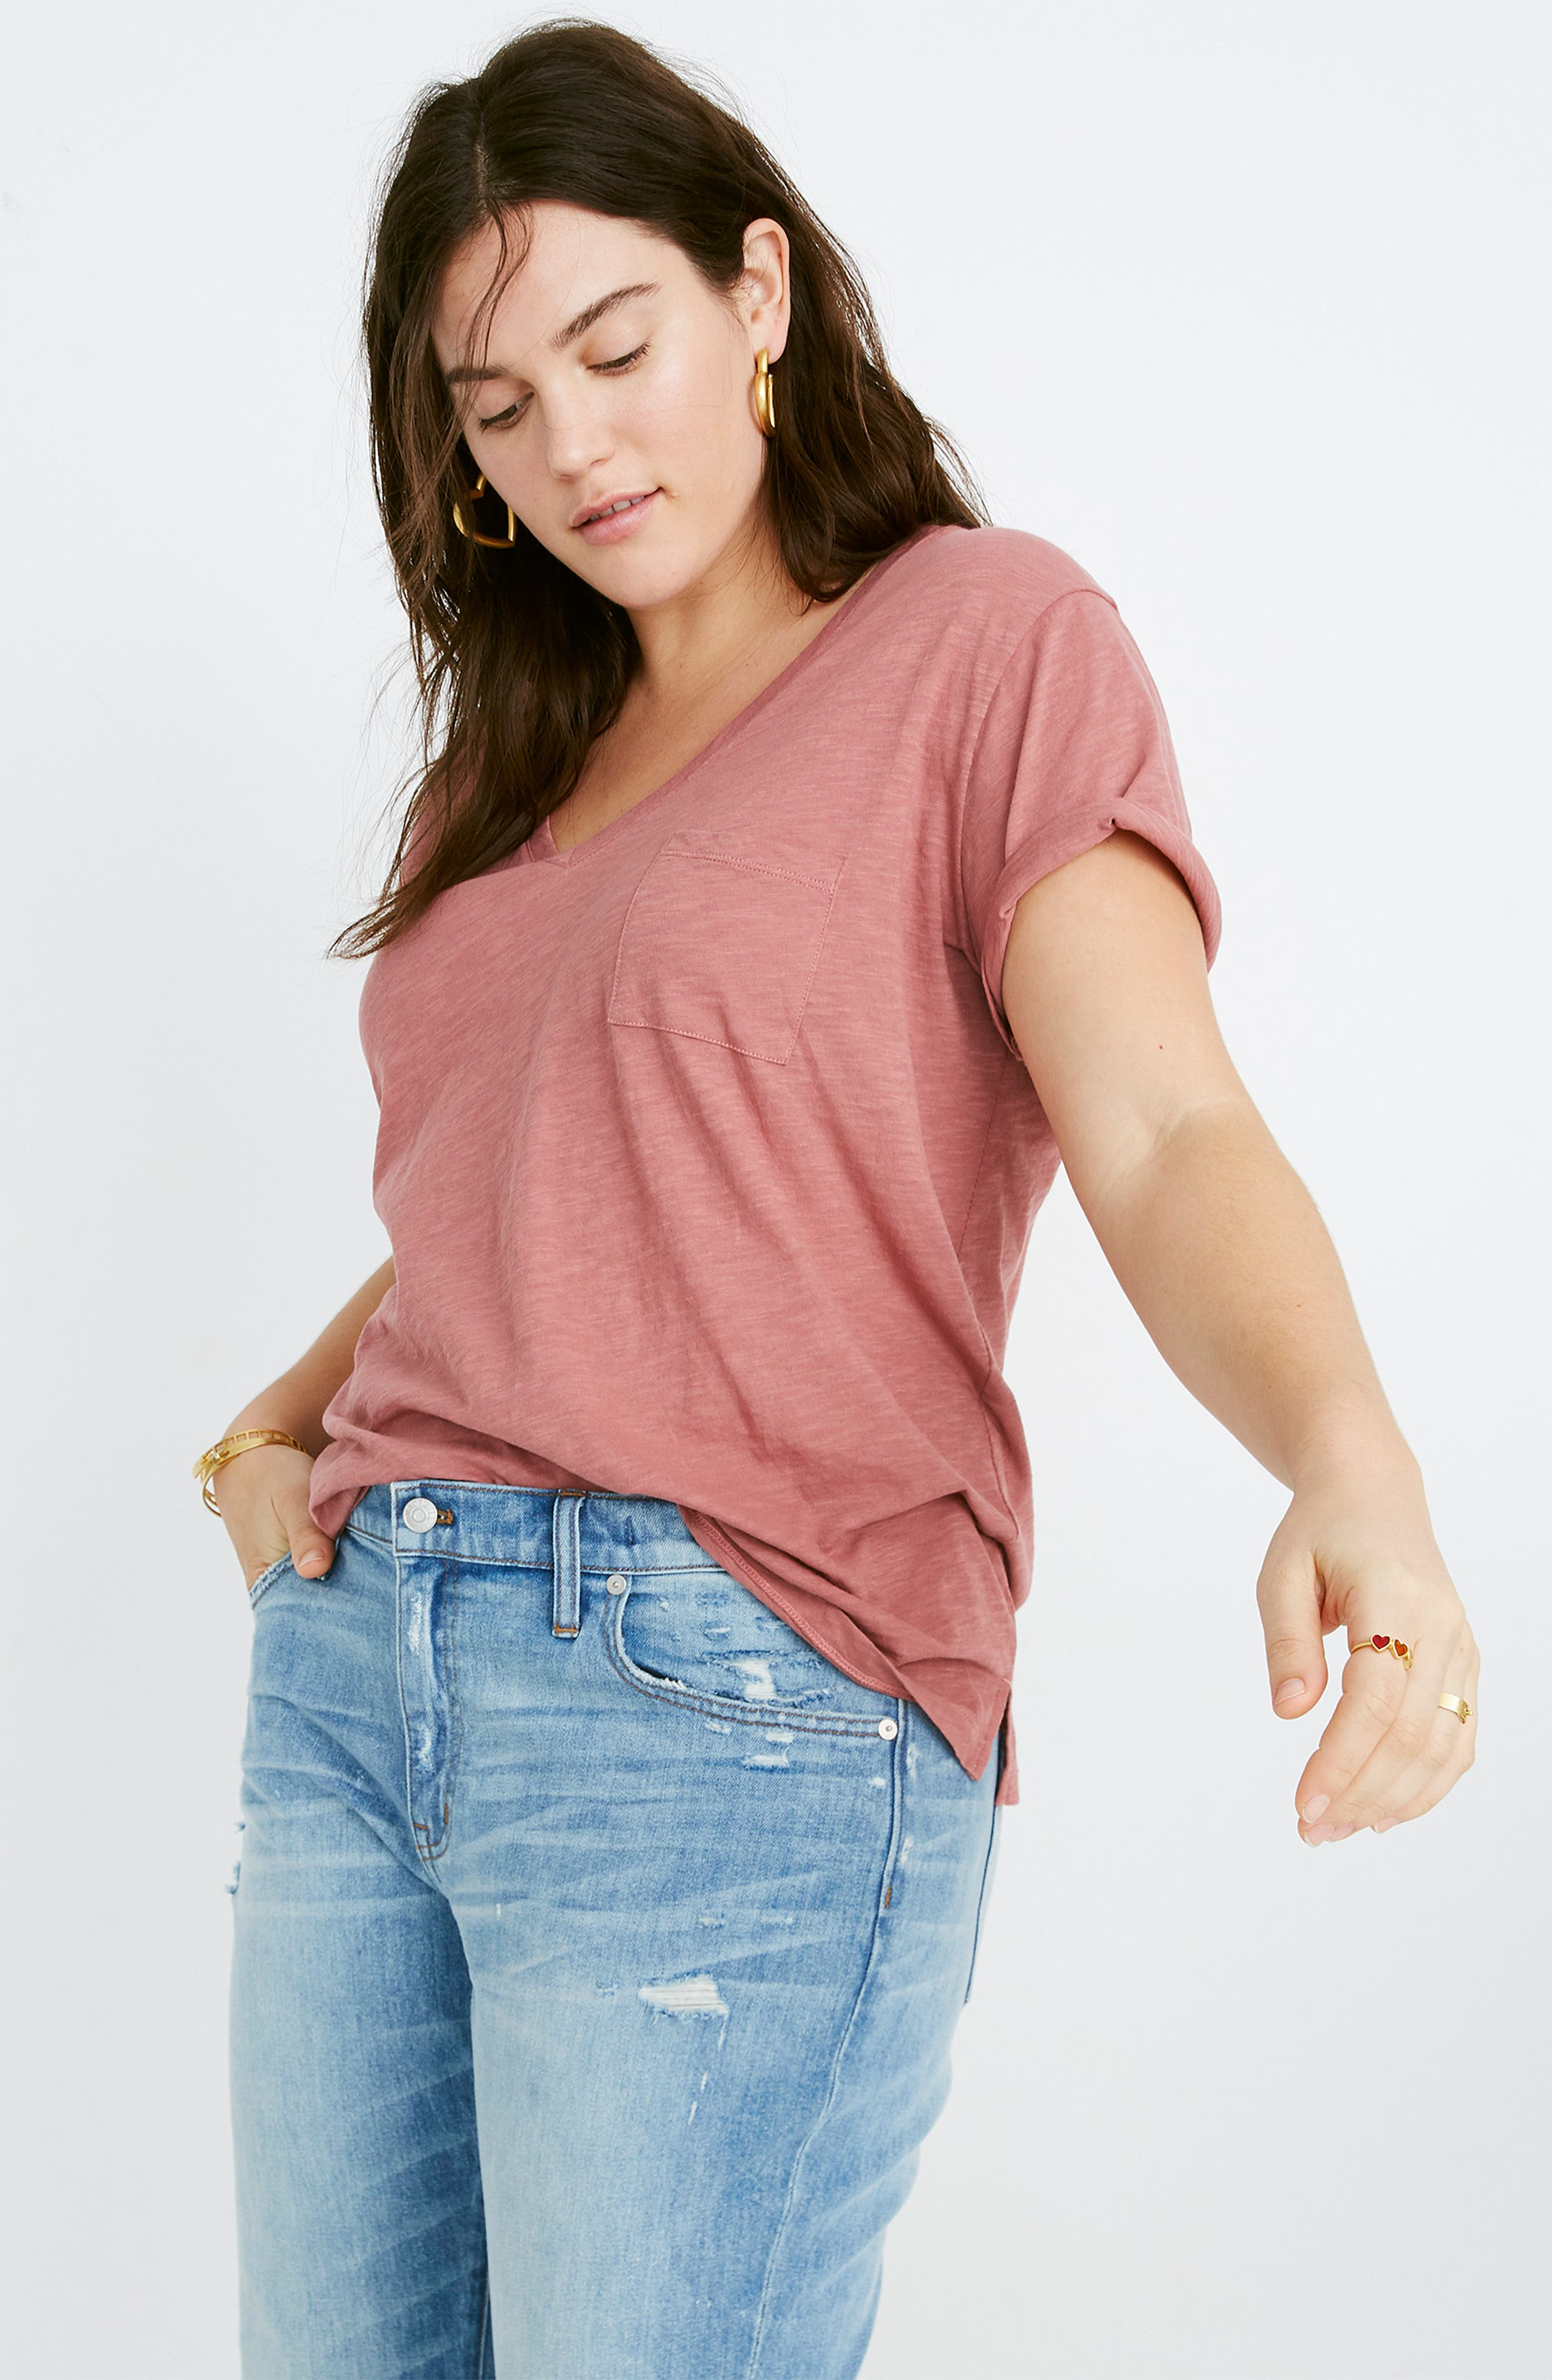 MADEWELL, Whisper Cotton V-Neck Pocket Tee, Alternate thumbnail 8, color, AUTUMN BERRY